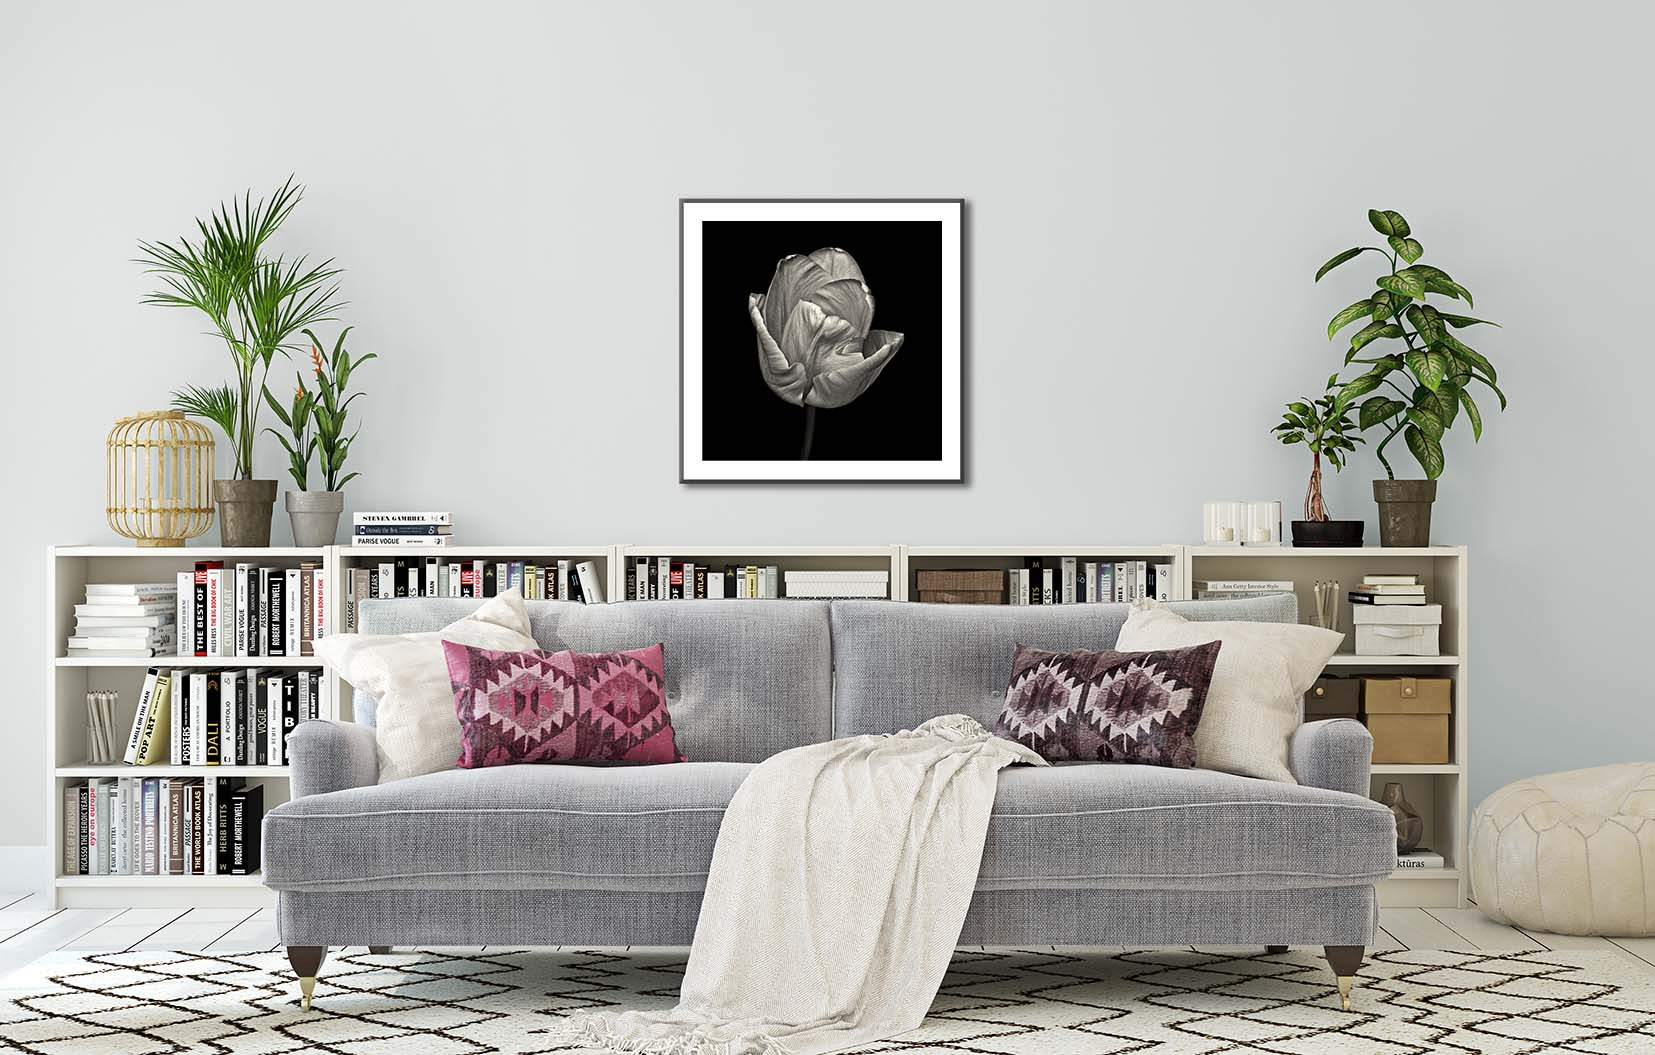 Black and white photograph of a tulip on a black background, framed and hanging on the wall. Limited edition, fine art floral study of a tulip by award-winning photographer Paul Coghlin FBIPP.